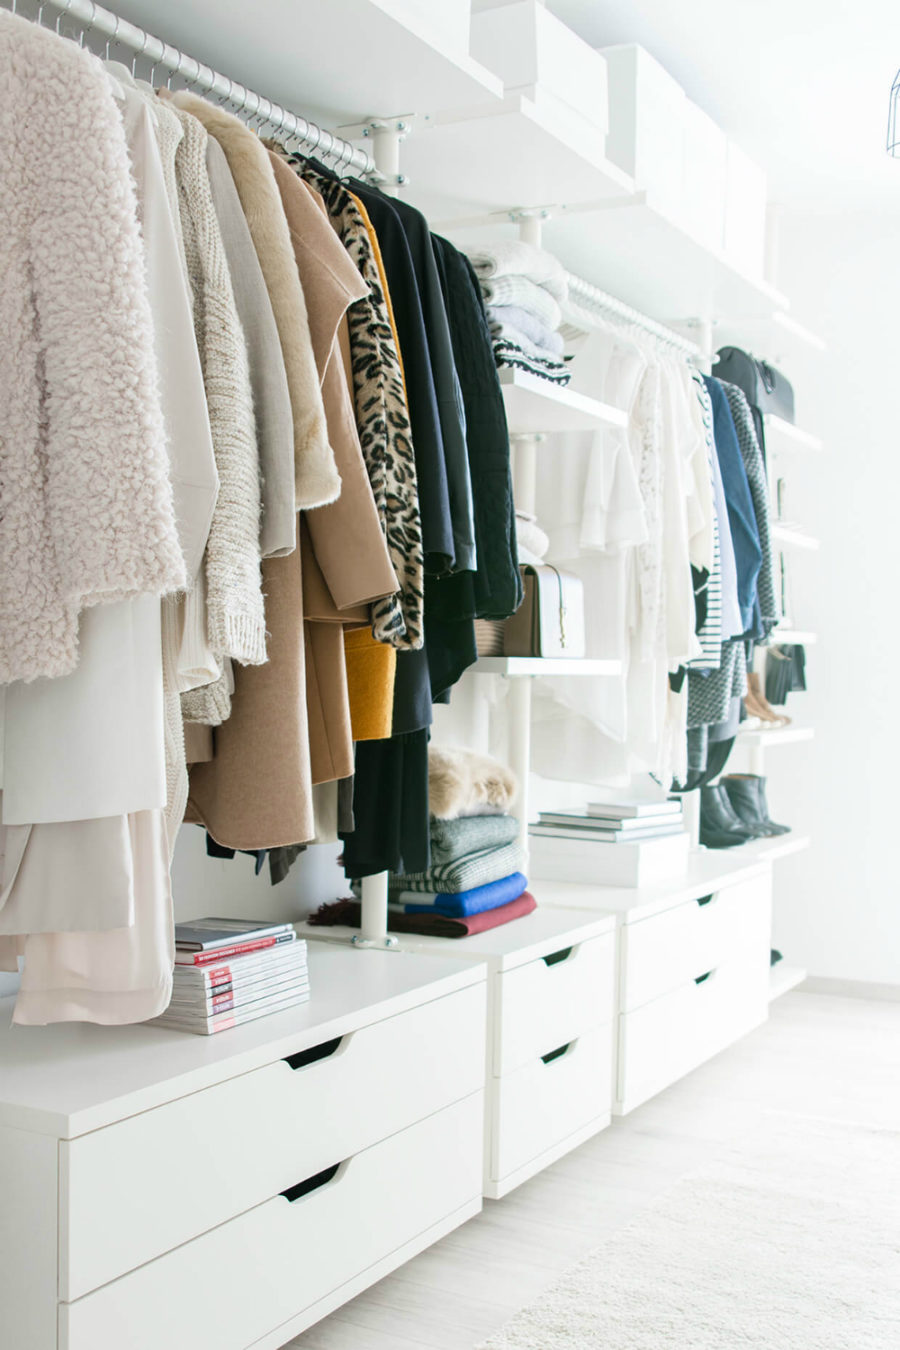 30 chic and modern open closet ideas for displaying your wardrobe shoproomideas - Clothing storage ideas for small spaces decoration ...